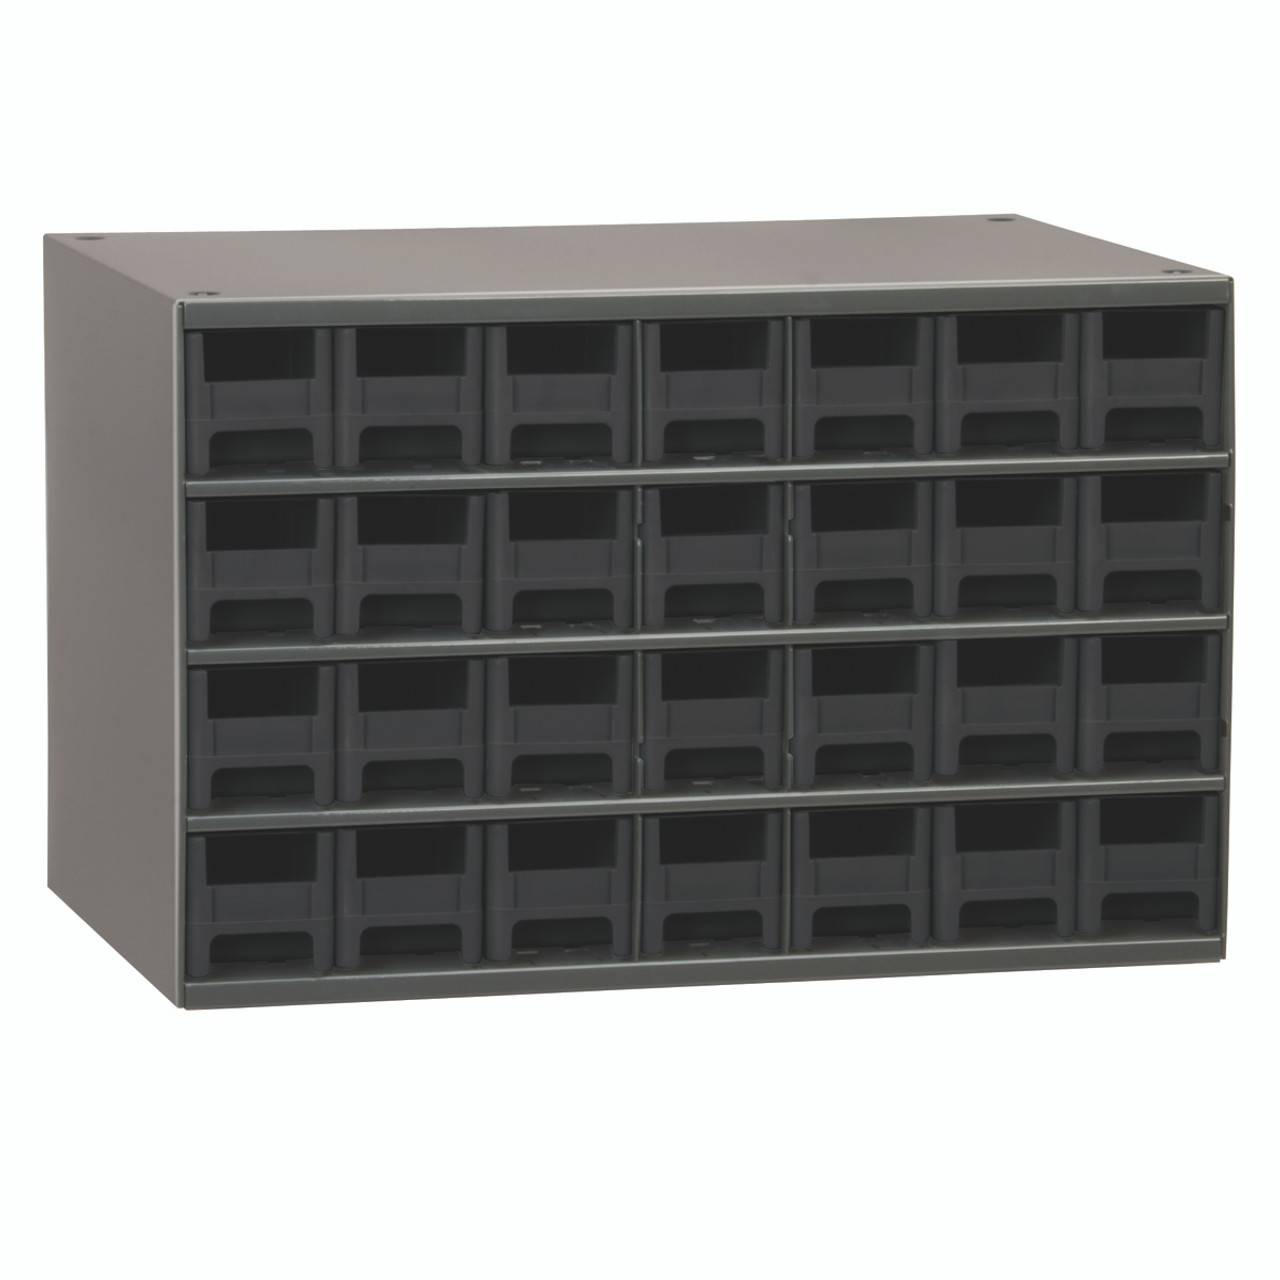 Cabinet, 19-Series Steel Cabinet w/ 28 Drawers  19228BLK